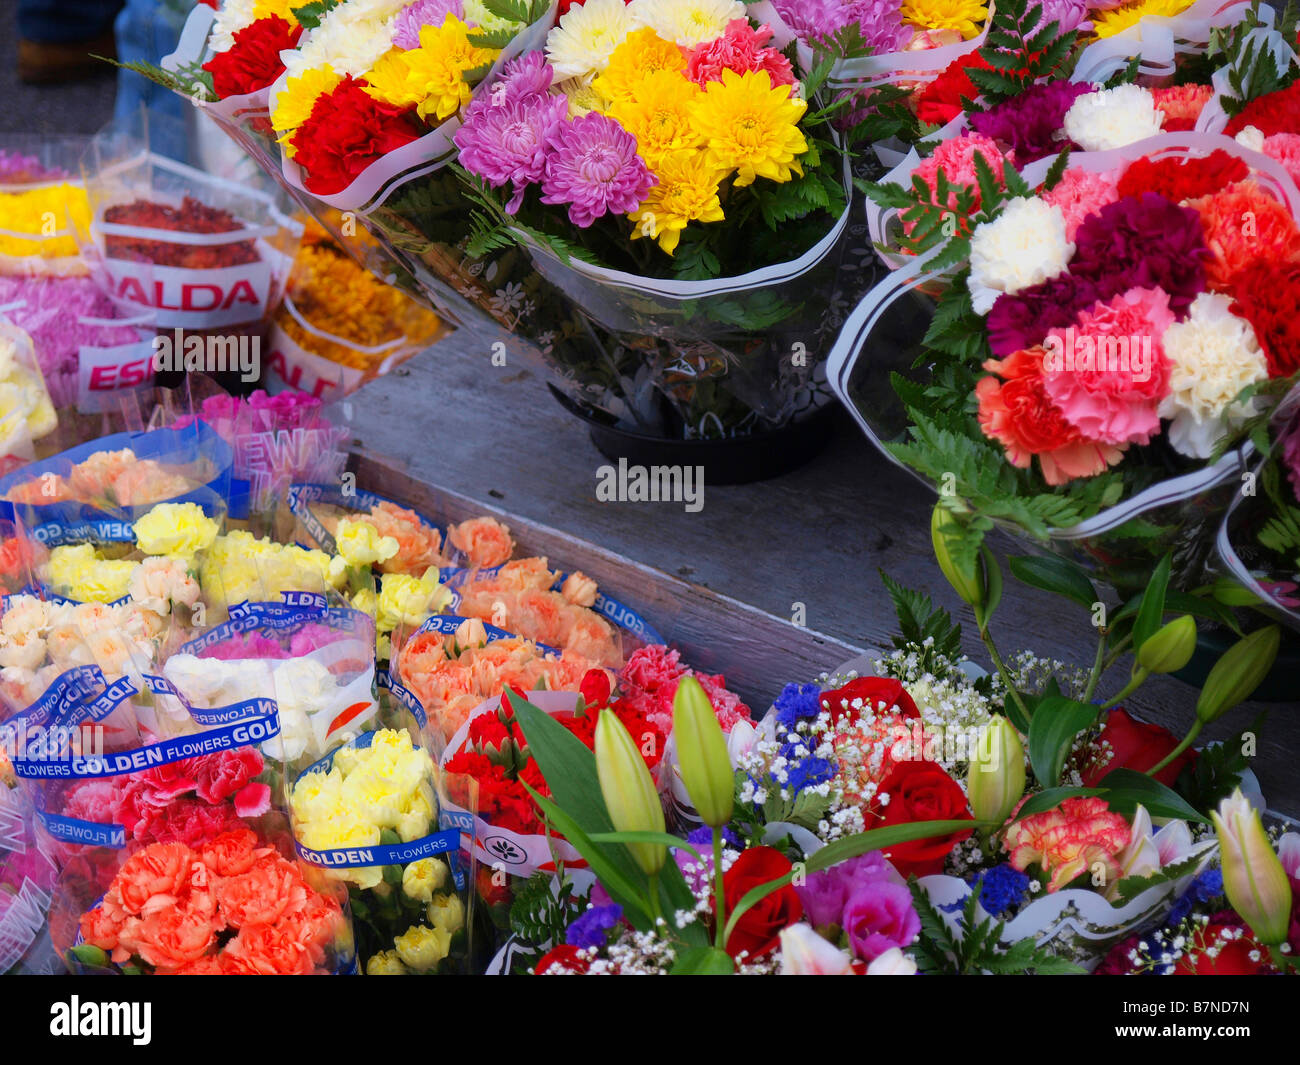 Flowers On Display From A Street Vendor In New York City Stock Photo